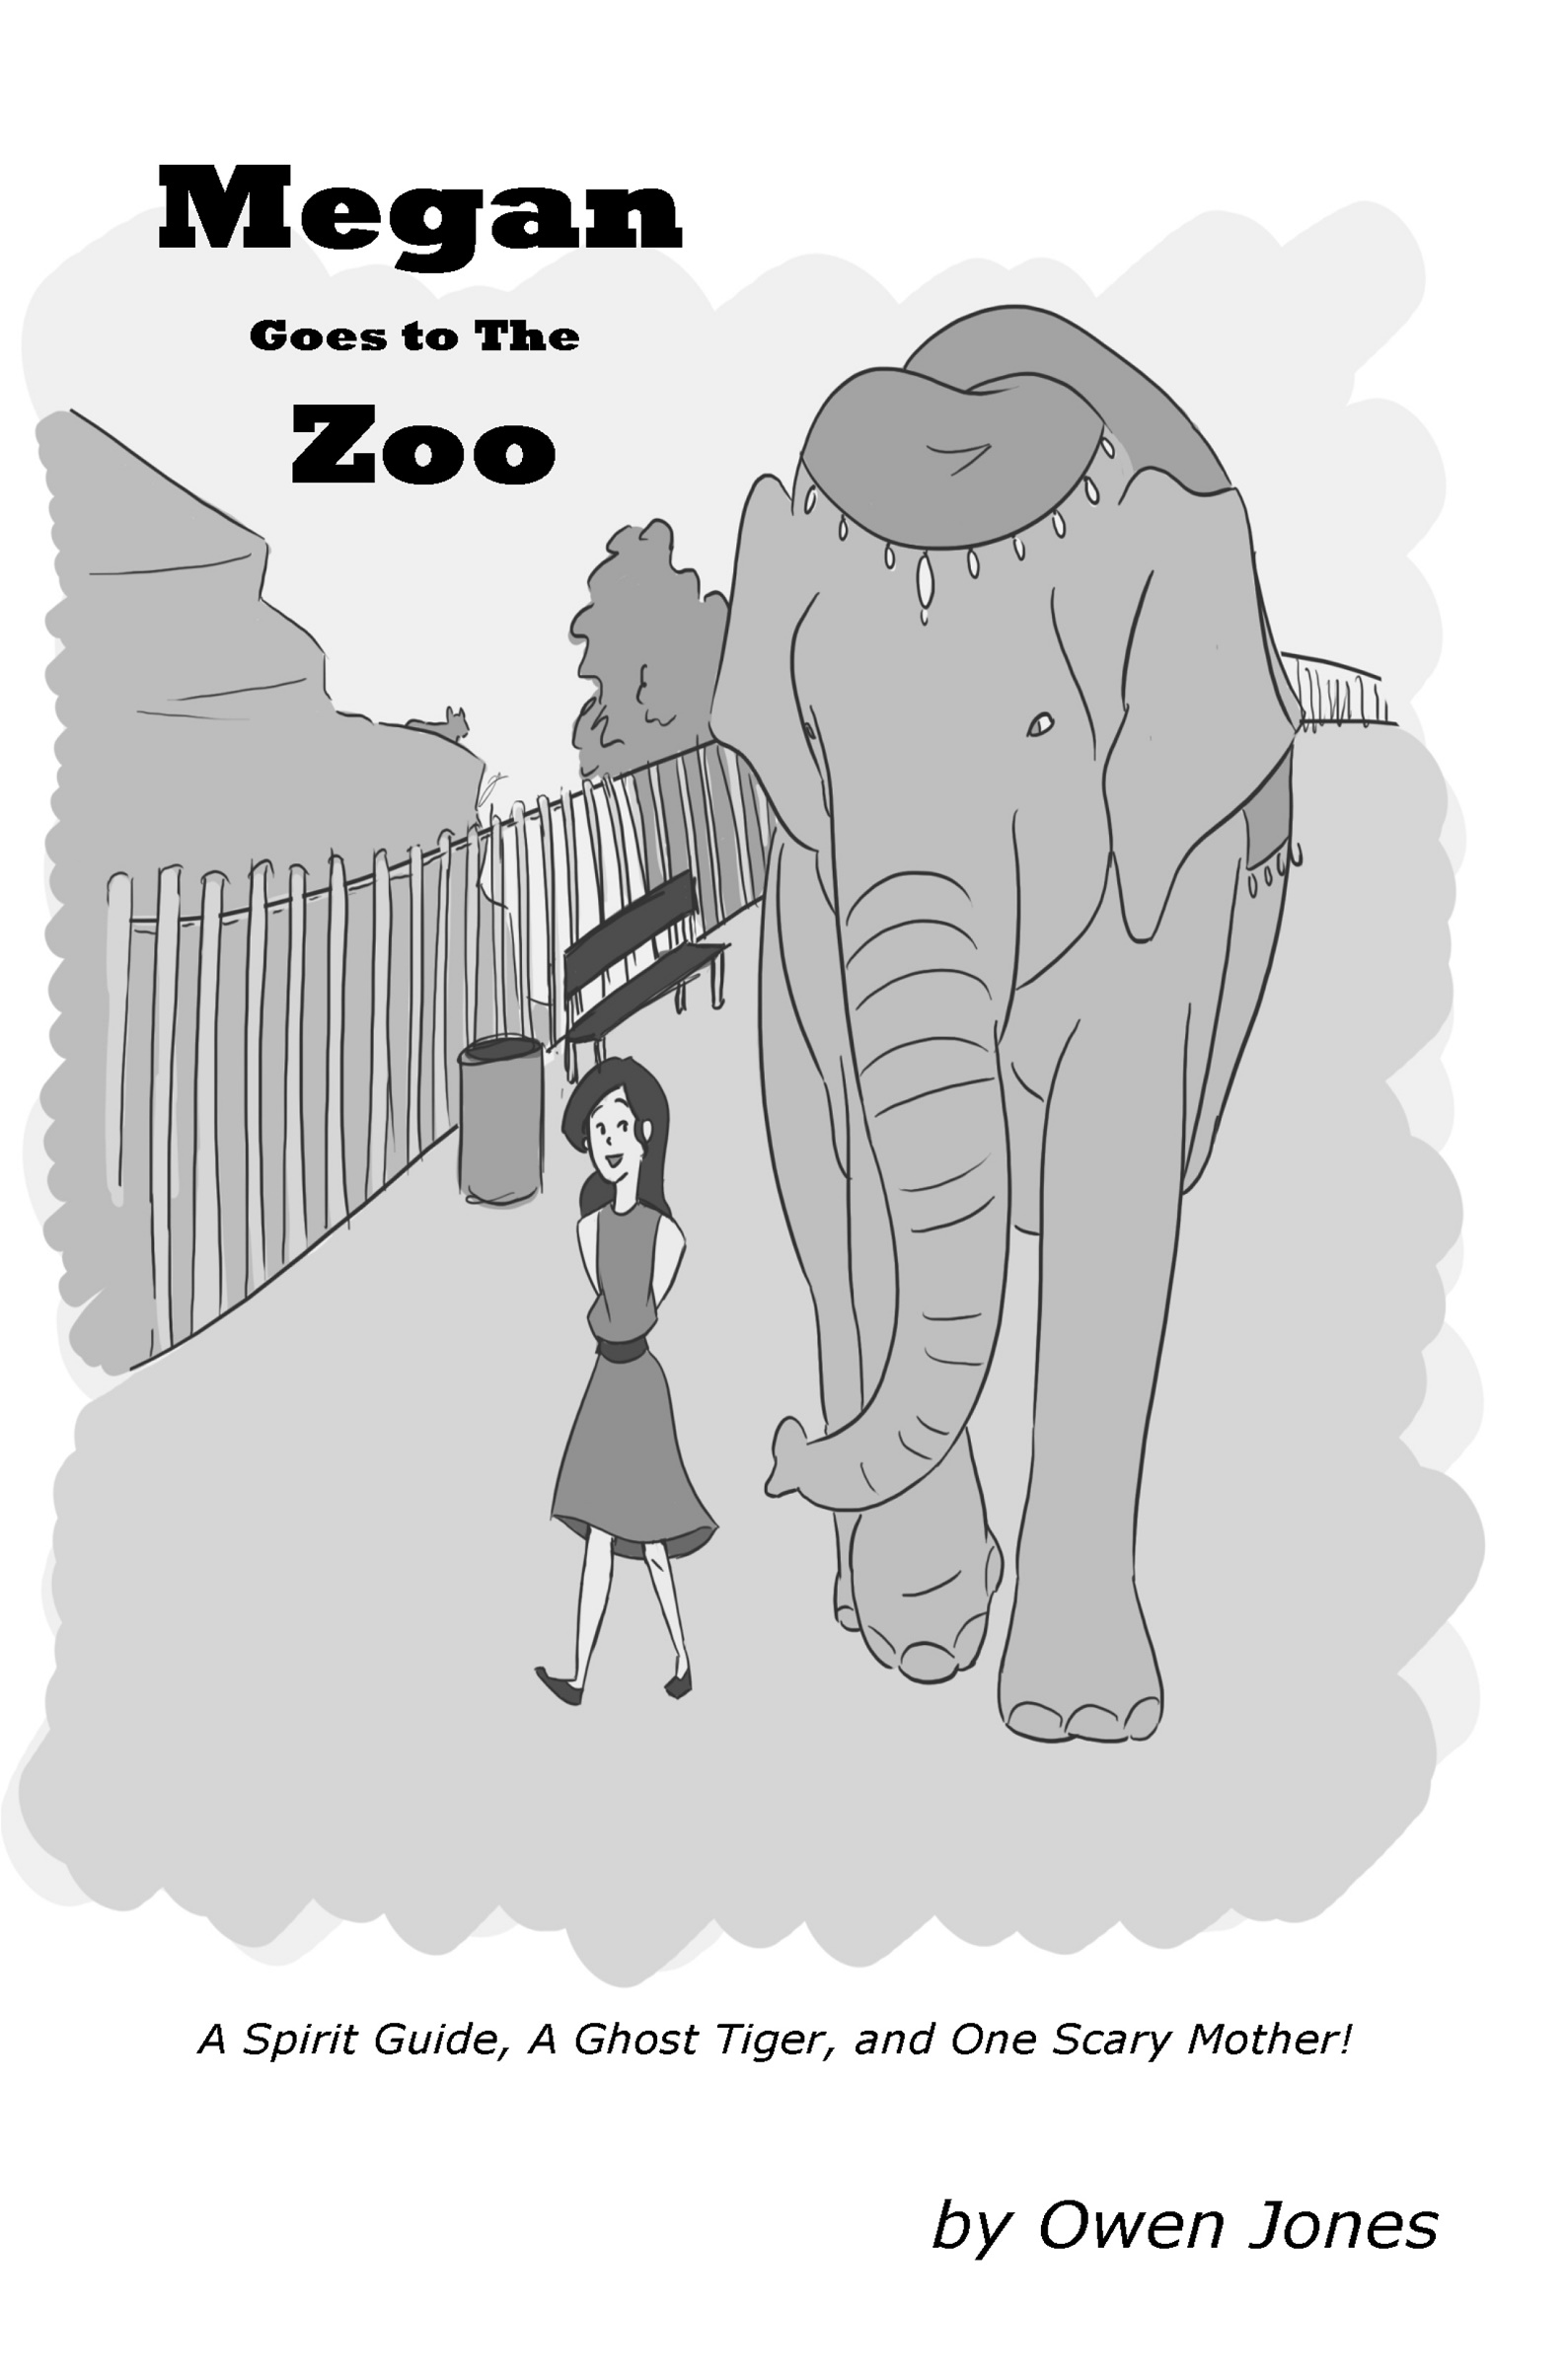 Megan goes to the zoo